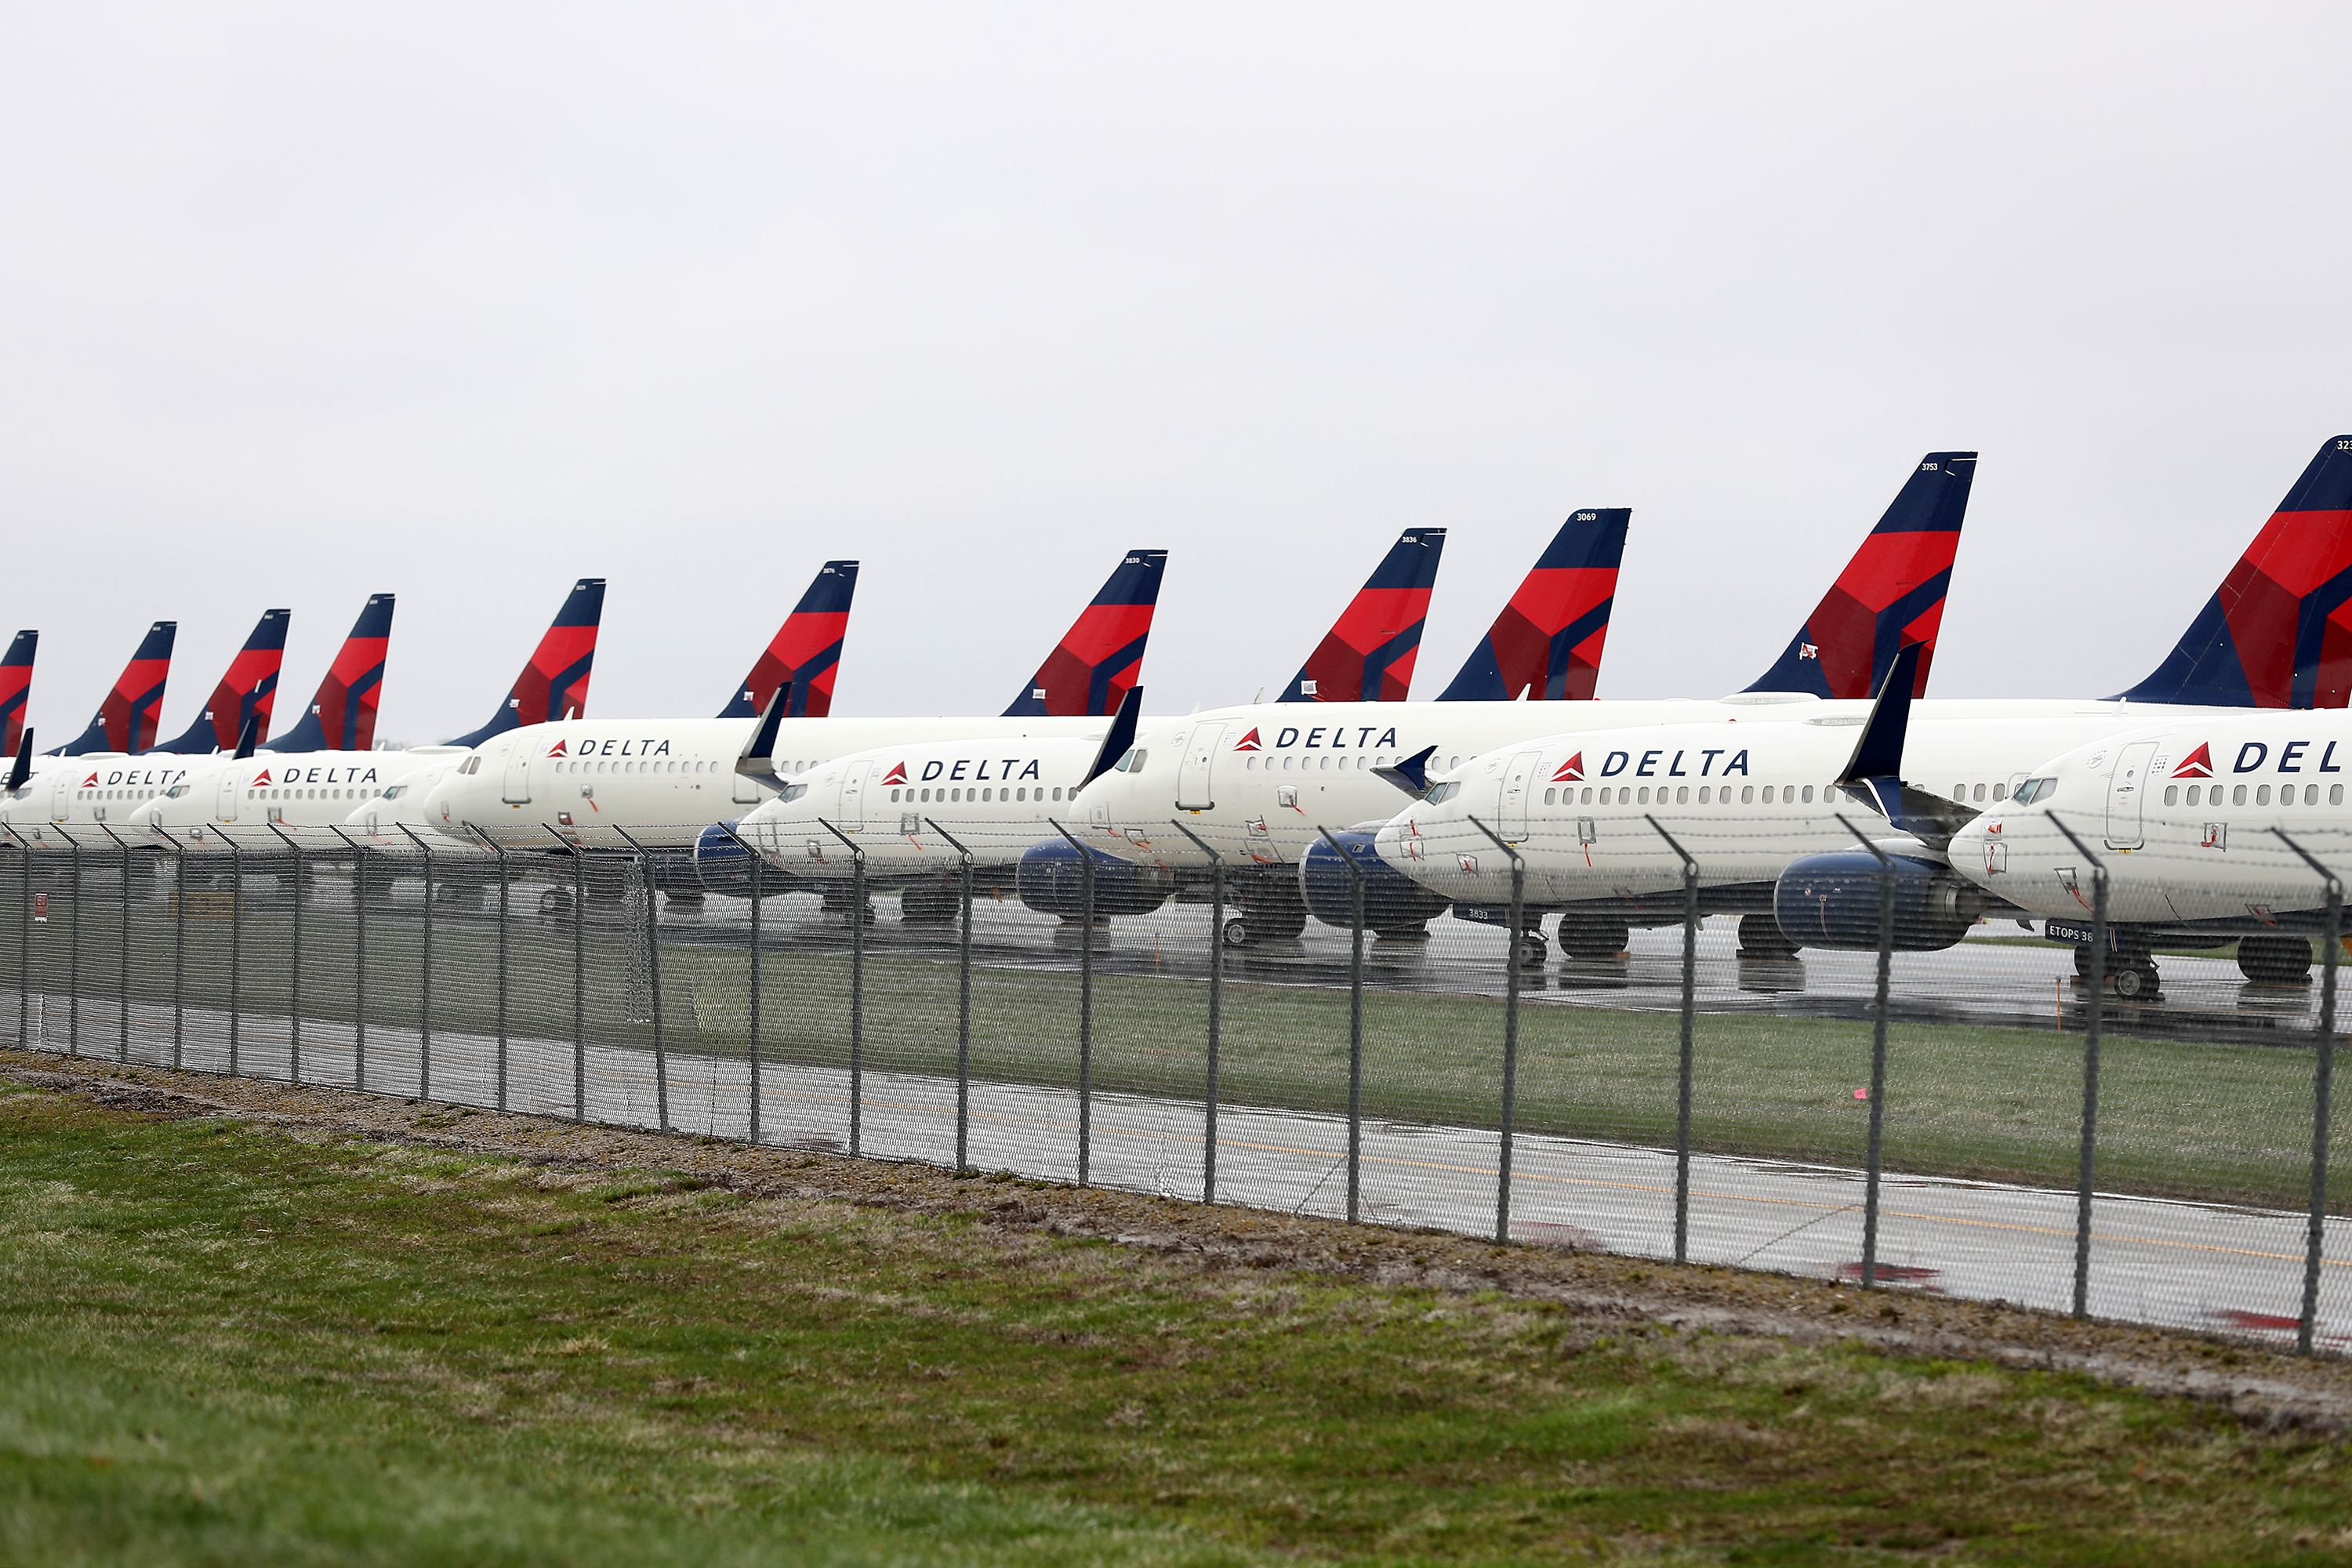 Delta CEO: 'We still haven't seen the bottom'